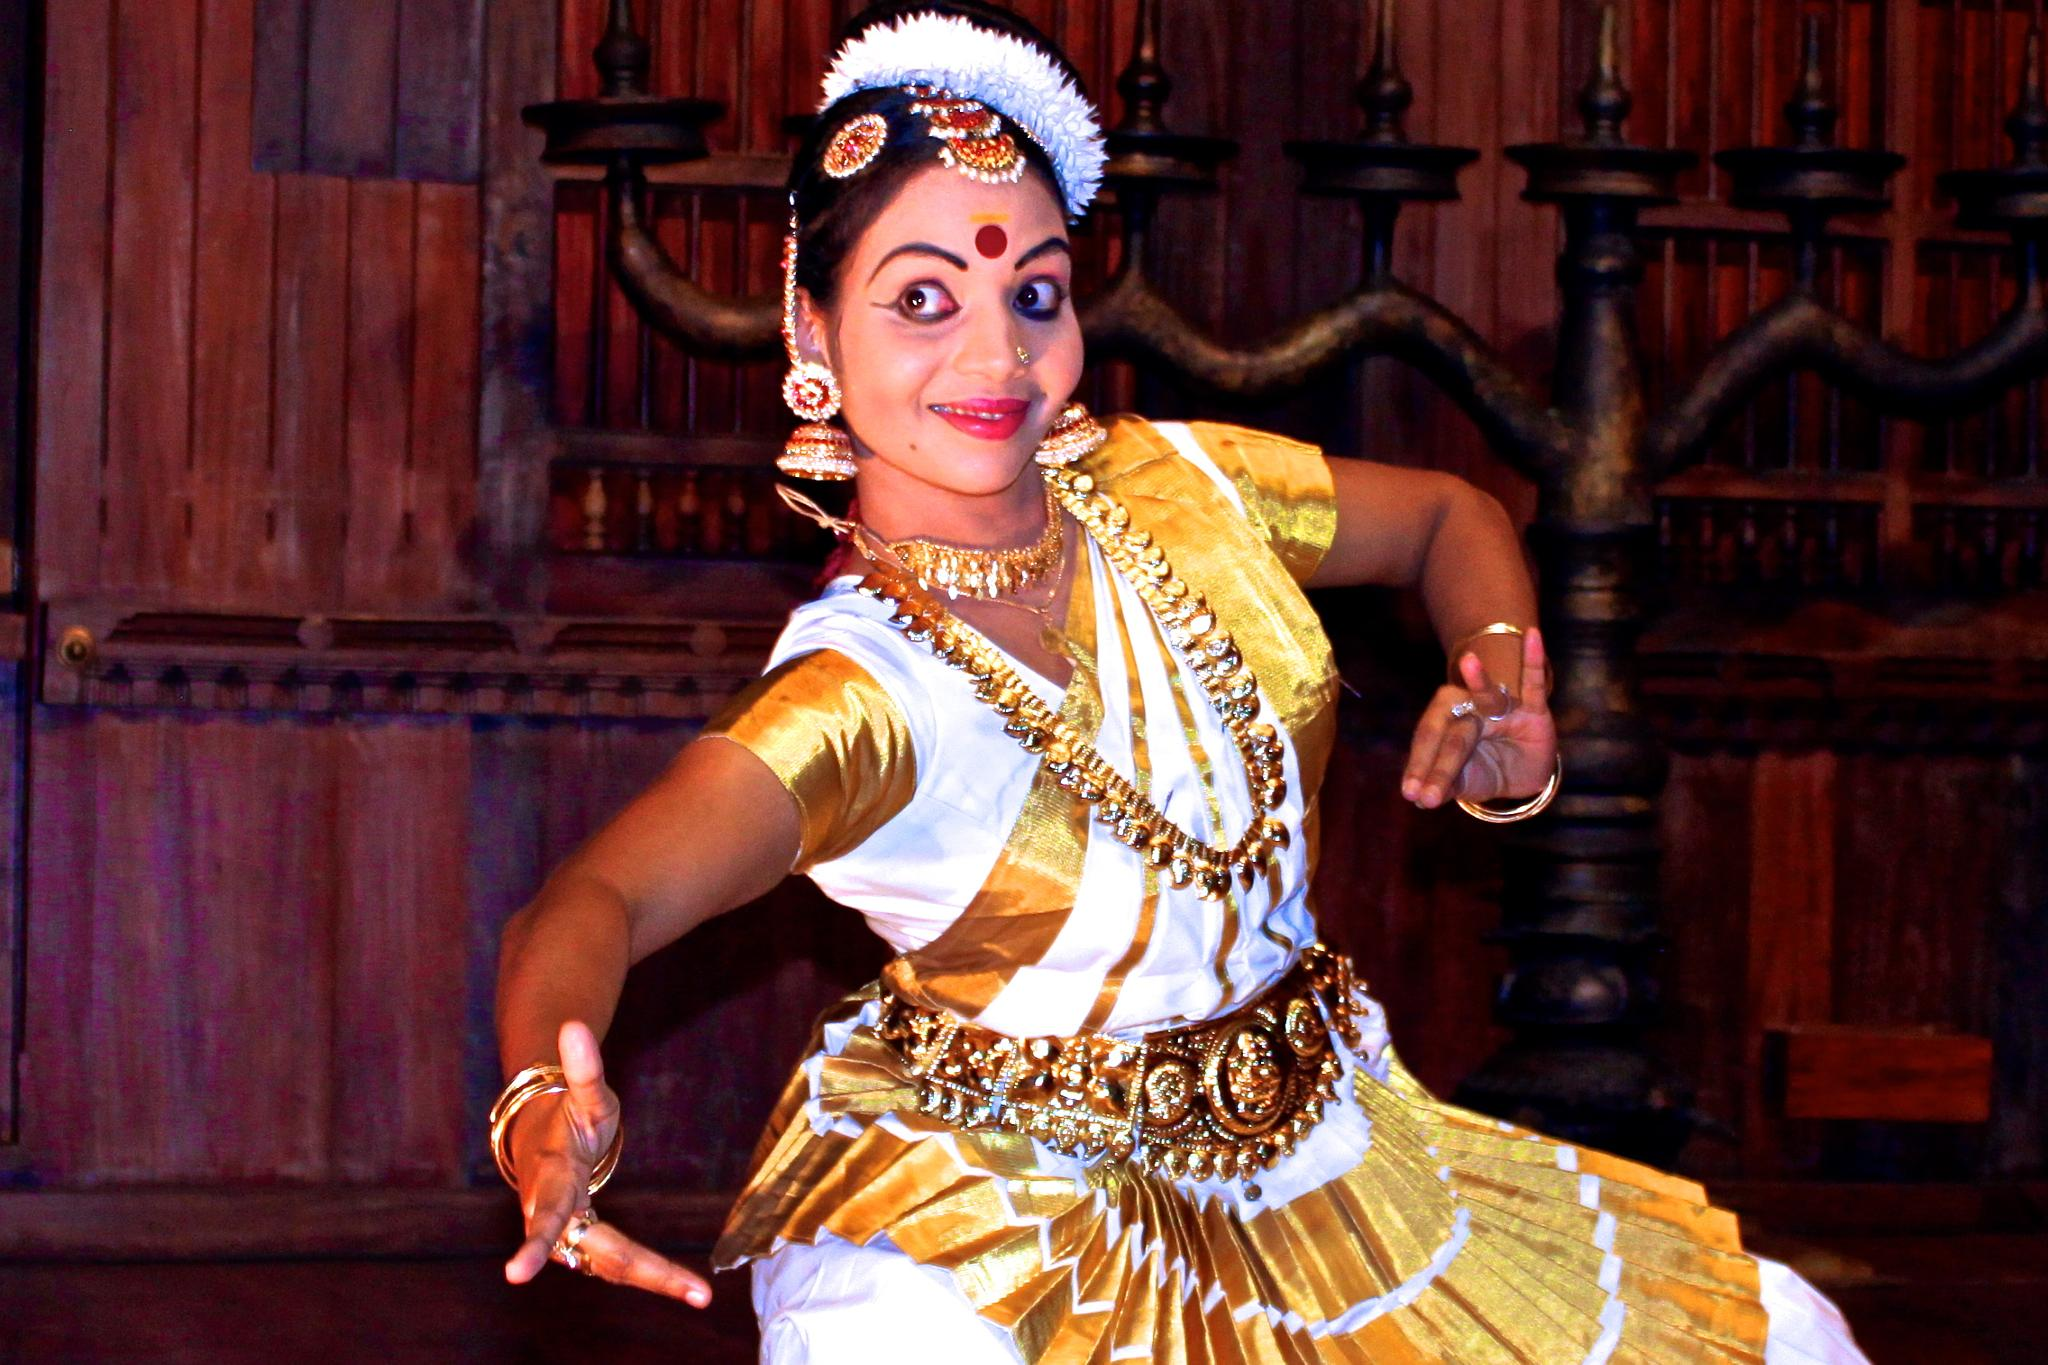 Dancer in Kerala, India by patricia_collins